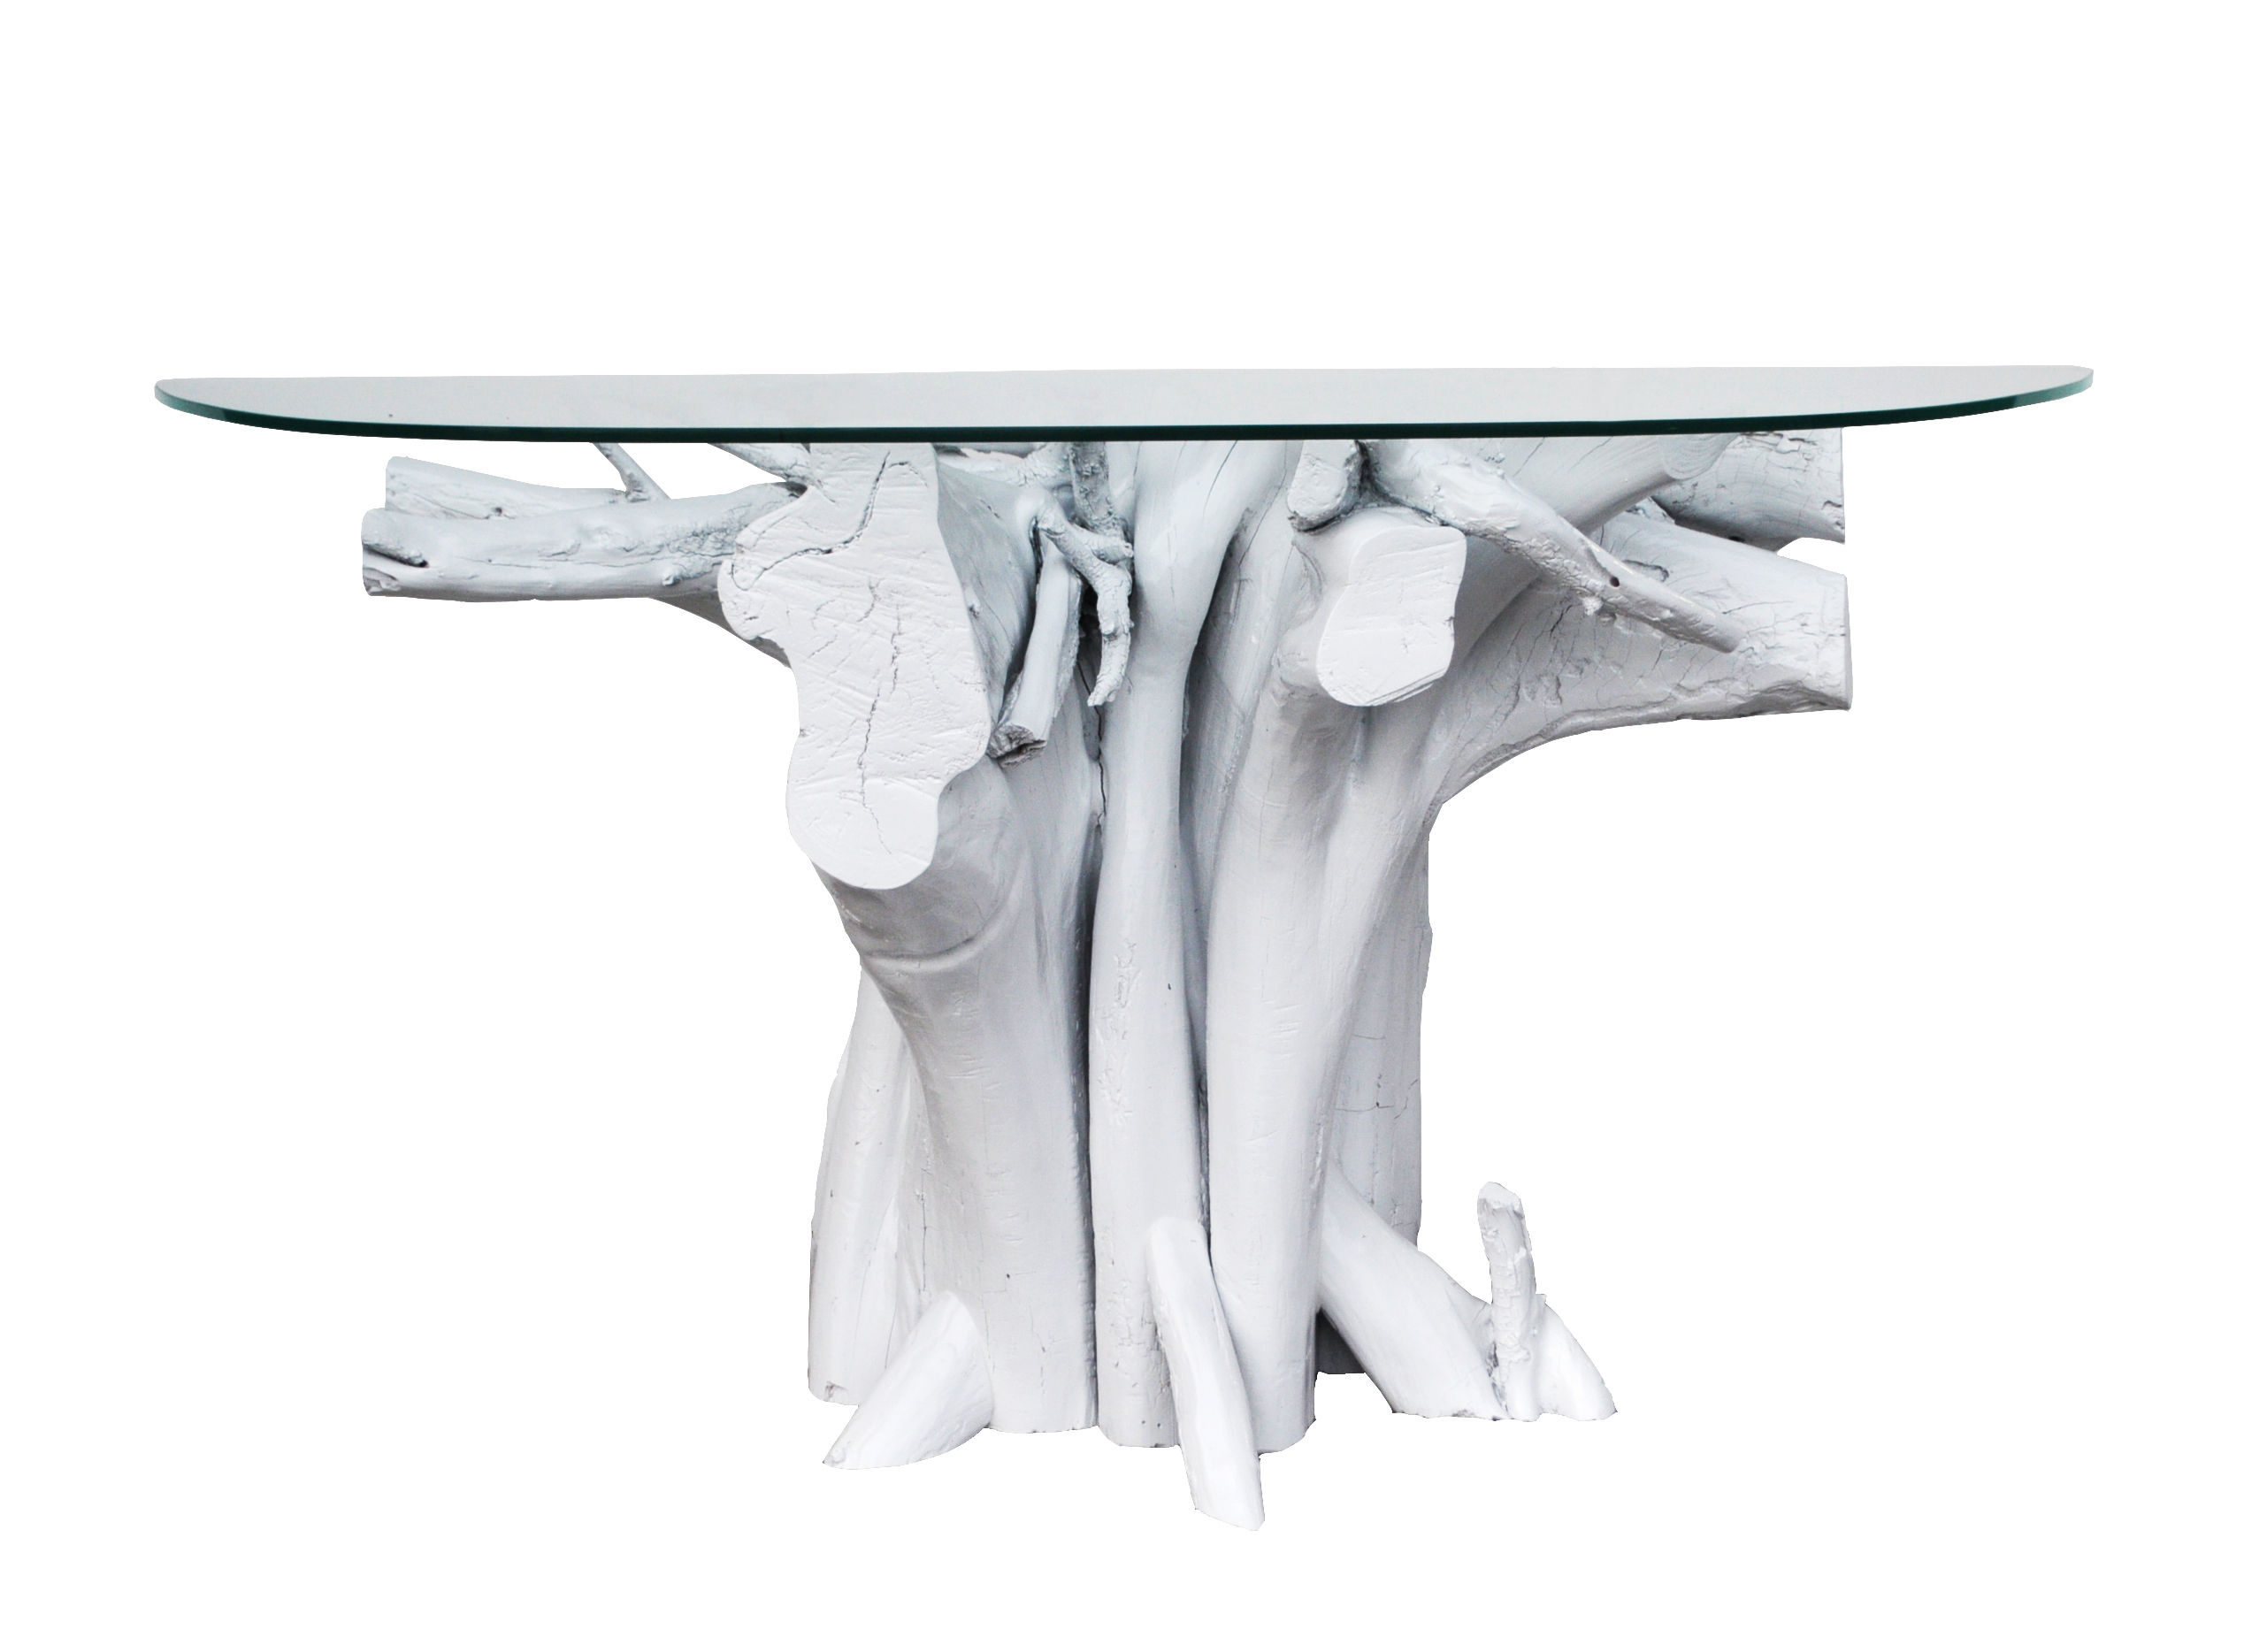 Vintage white lacquered driftwood console table console tables offered is a vintage driftwood console table that weve lacquered white for a fresh geotapseo Images